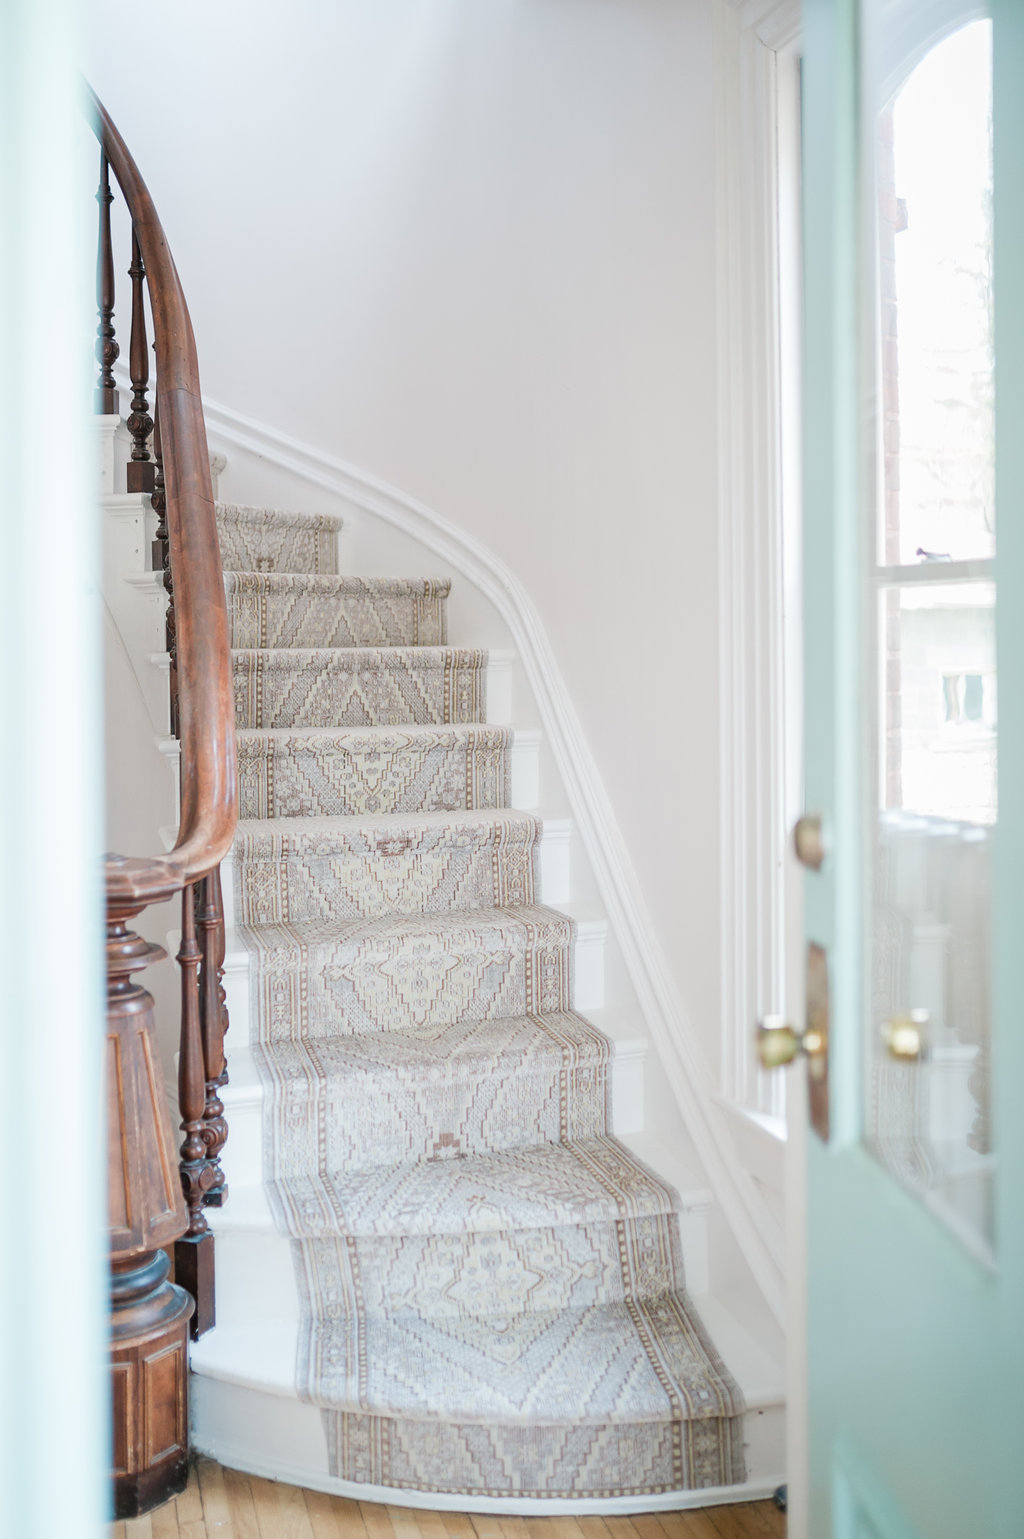 ... Amazing On Your Staircase! Or Ummm Anywhere! I Canu0027t Wait To Show You  The Rug That Is Going To Be In My Dining Room One Room Challenge Reveal  Coming ...